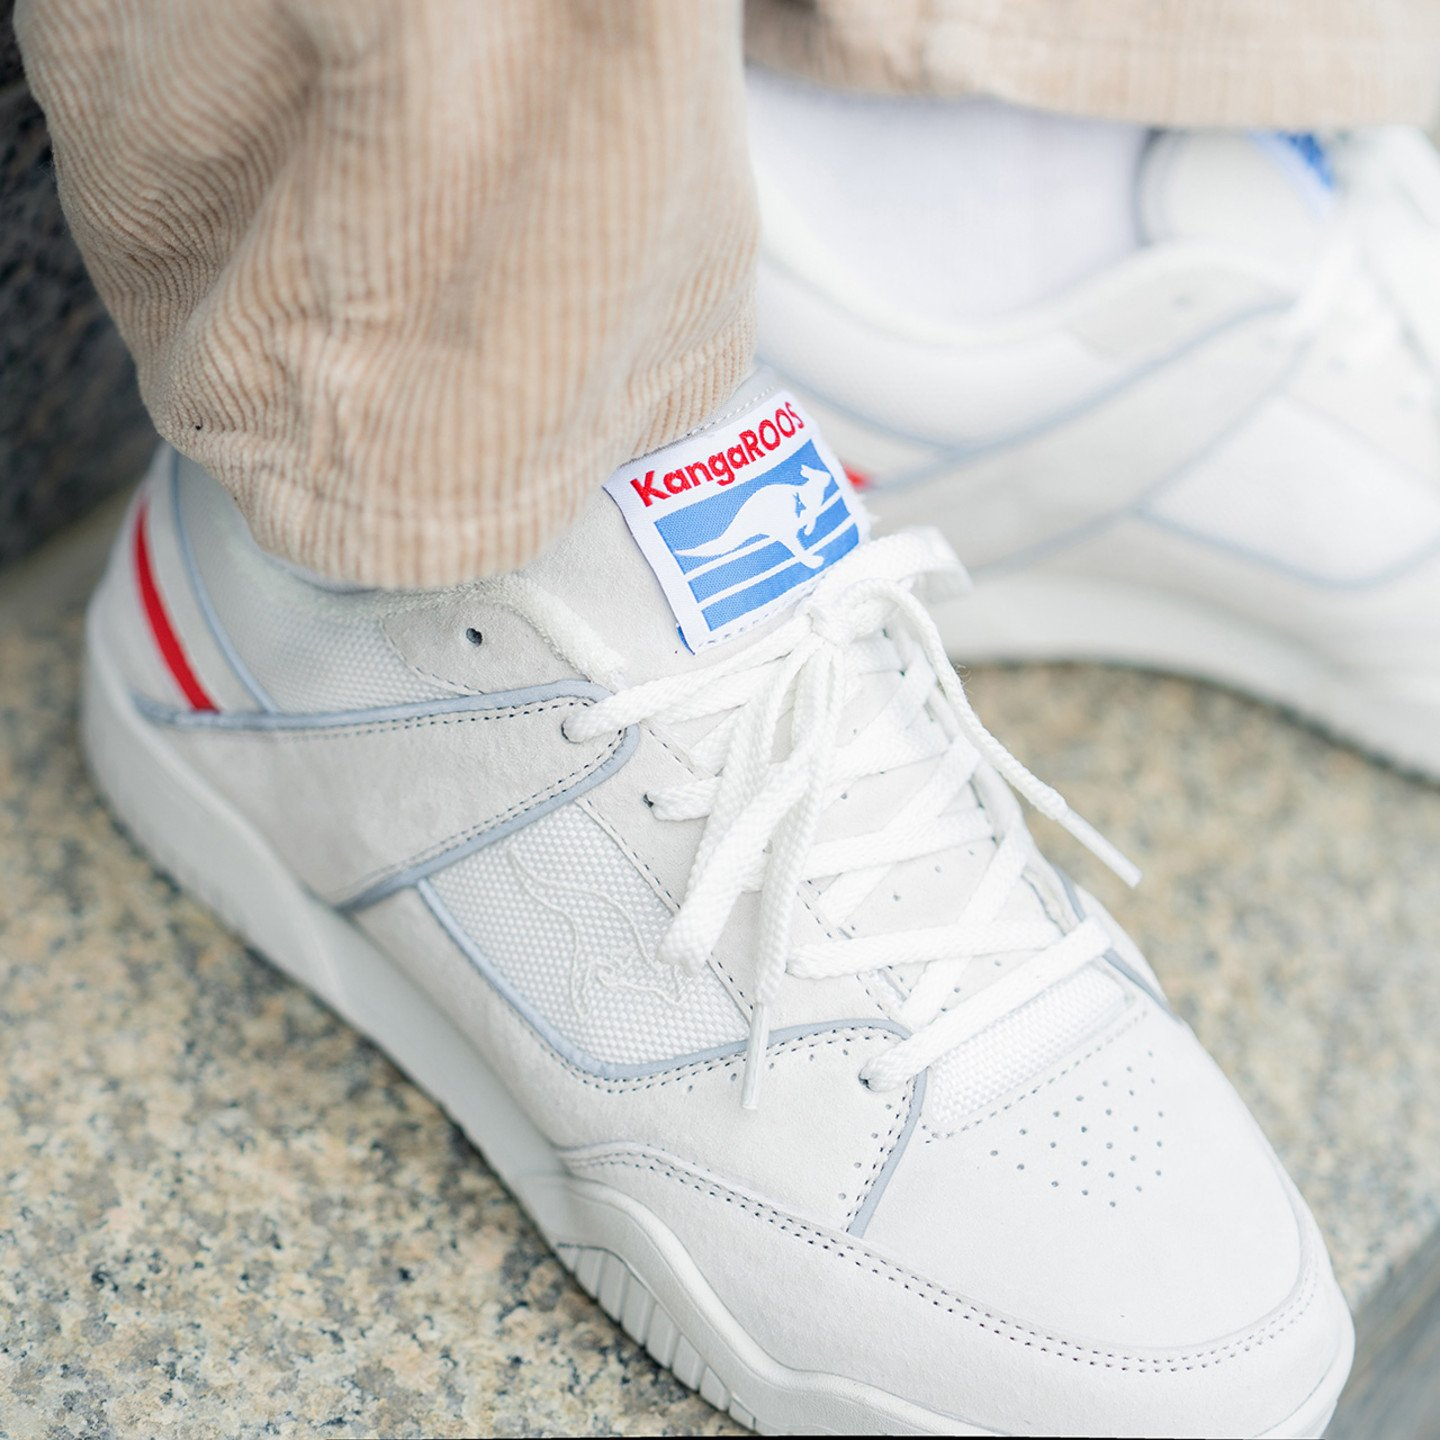 KangaROOS Baseline OG Off White / Collegiate Red / Royal Blue 47269-0029